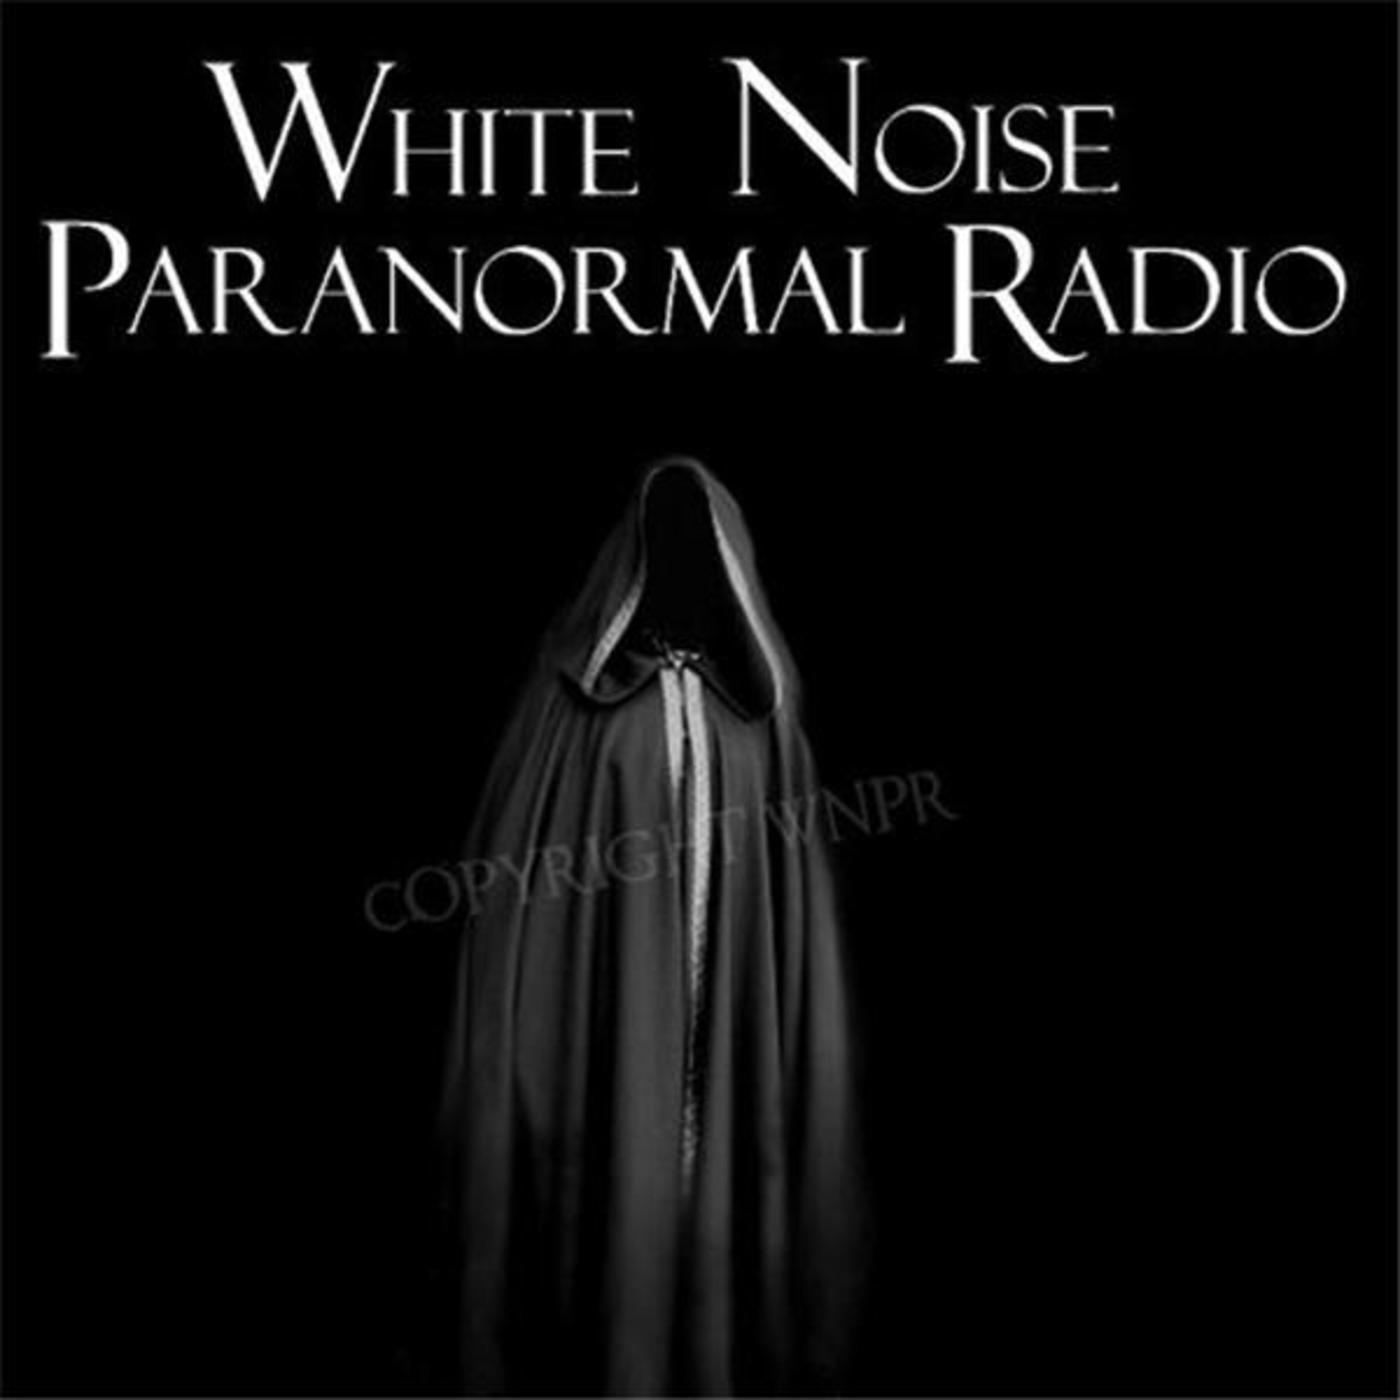 White Noise Paranormal Radio